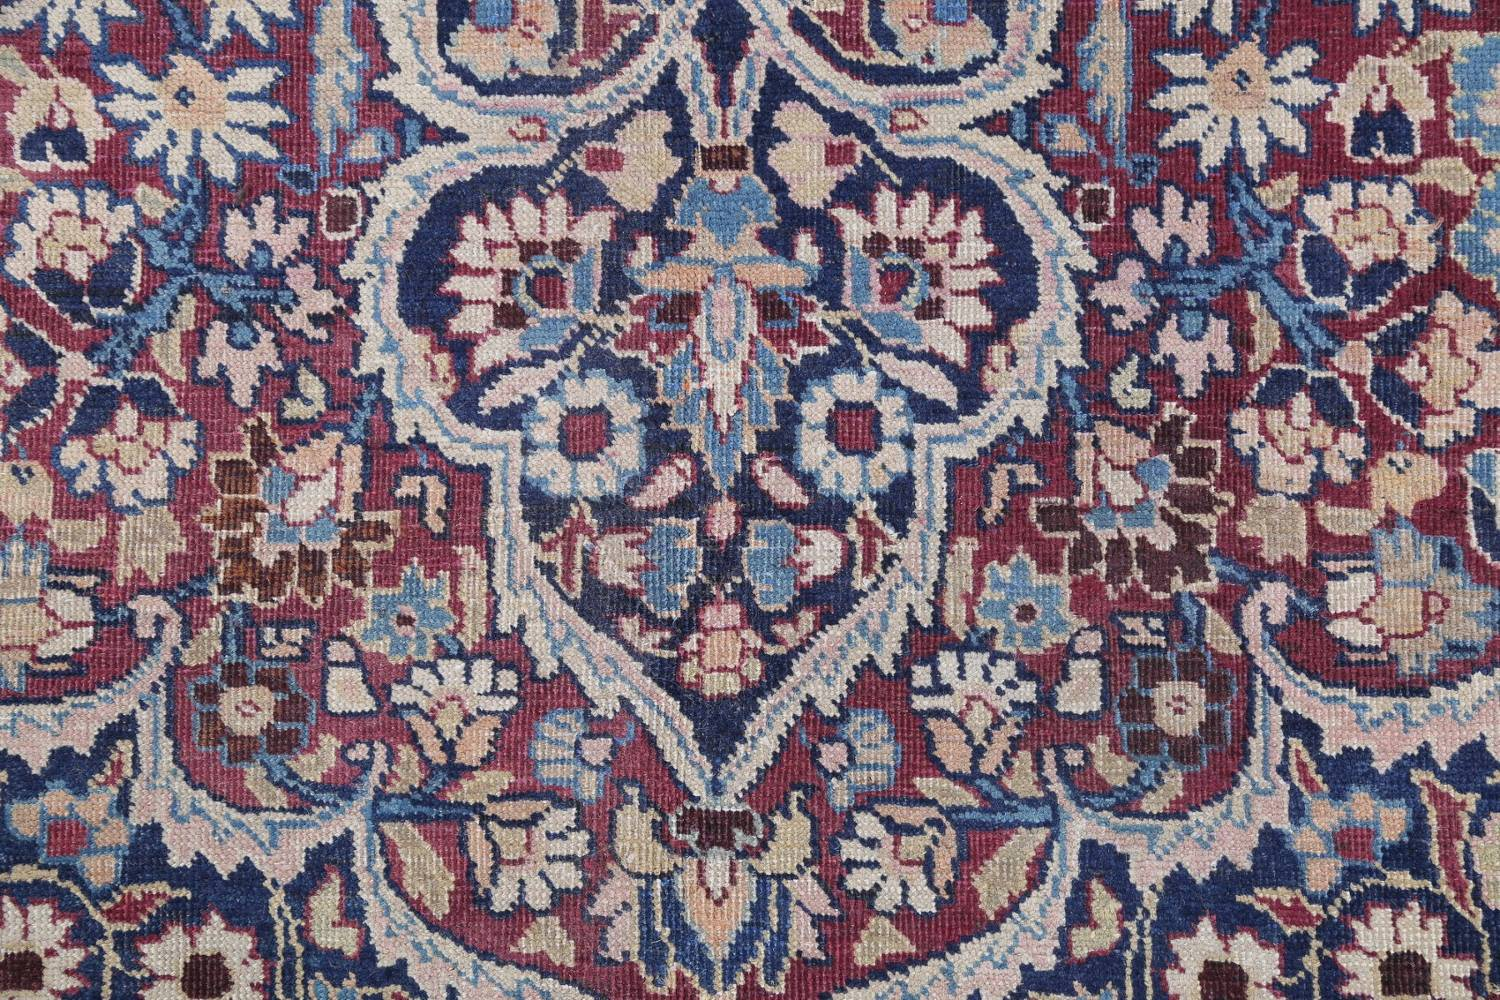 Pre-1900 Antique Floral Mashad Persian Hand-Knotted 10x13 Burgundy Area Rug image 9